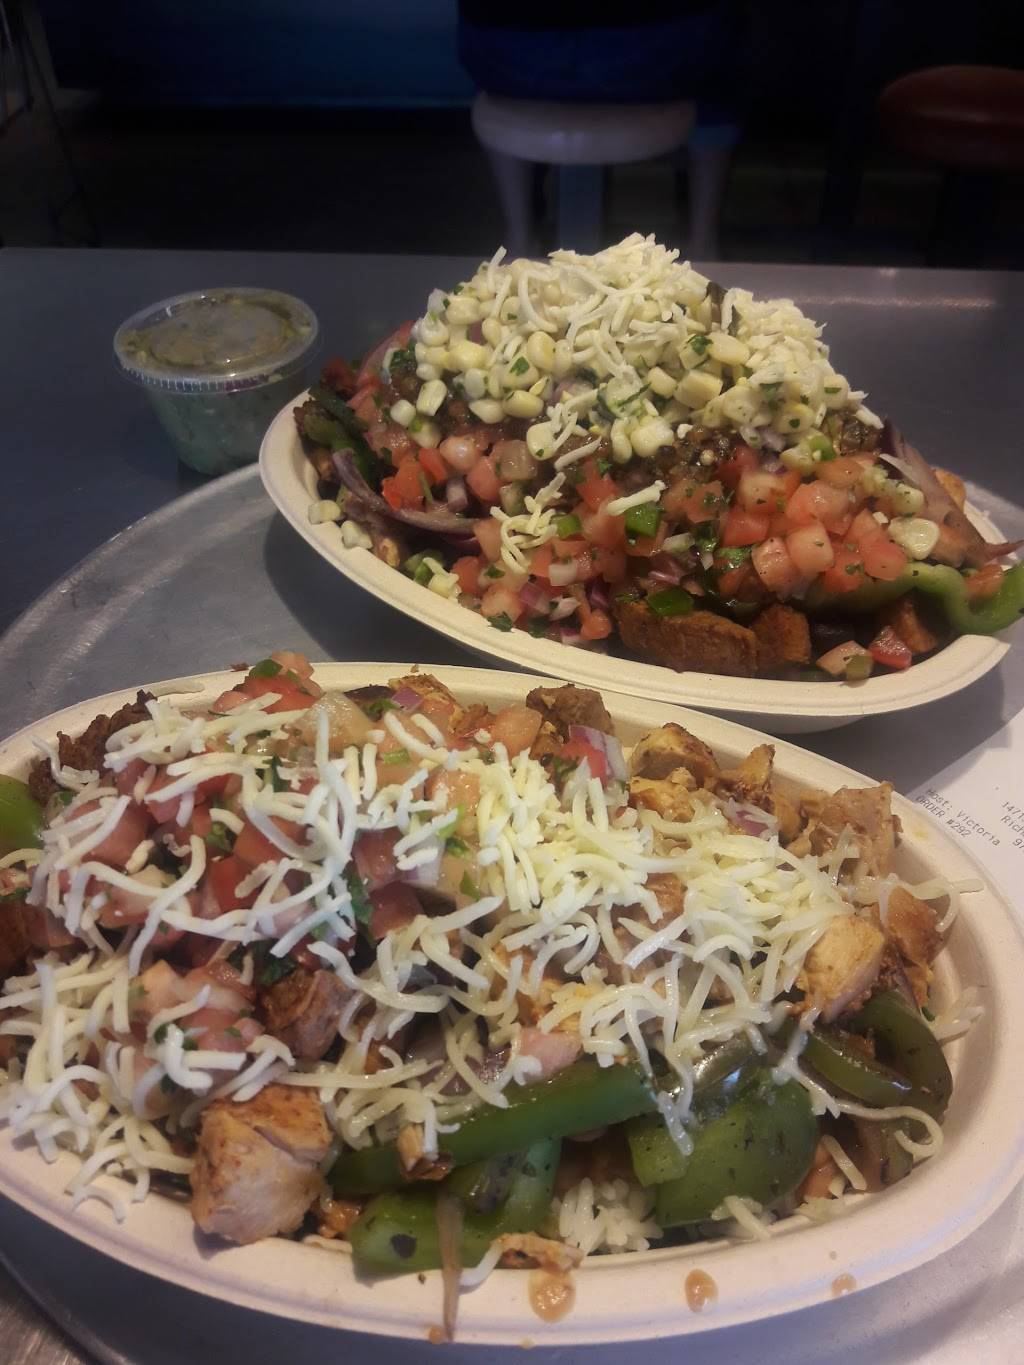 Chipotle Mexican Grill   restaurant   14715 S Coit Rd #102, Dallas, TX 75254, USA   9723498147 OR +1 972-349-8147